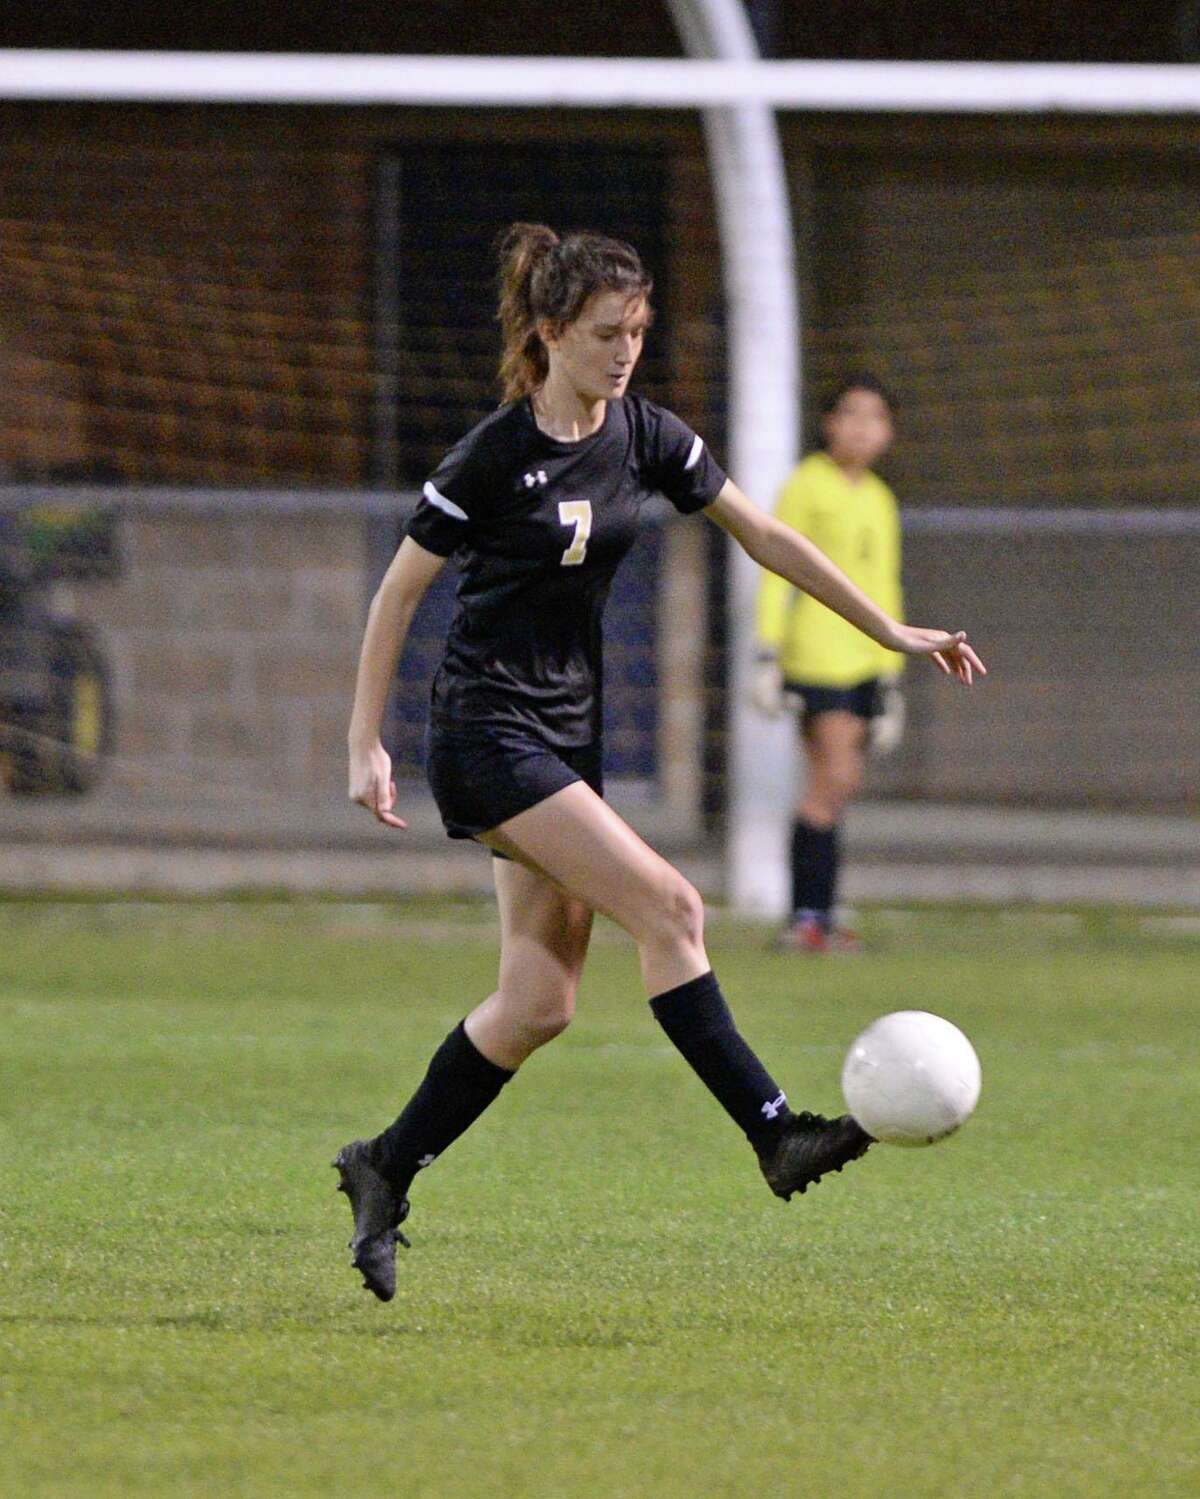 Marley Hennig (7) of Spring Woods traps a ball during the second half of a girls 6A-III District 17 soccer game between the Spring Woods Tigers and the Cy Falls Eagles on Monday, March 10, 2020 at Spring Woods High School, Houston, TX.